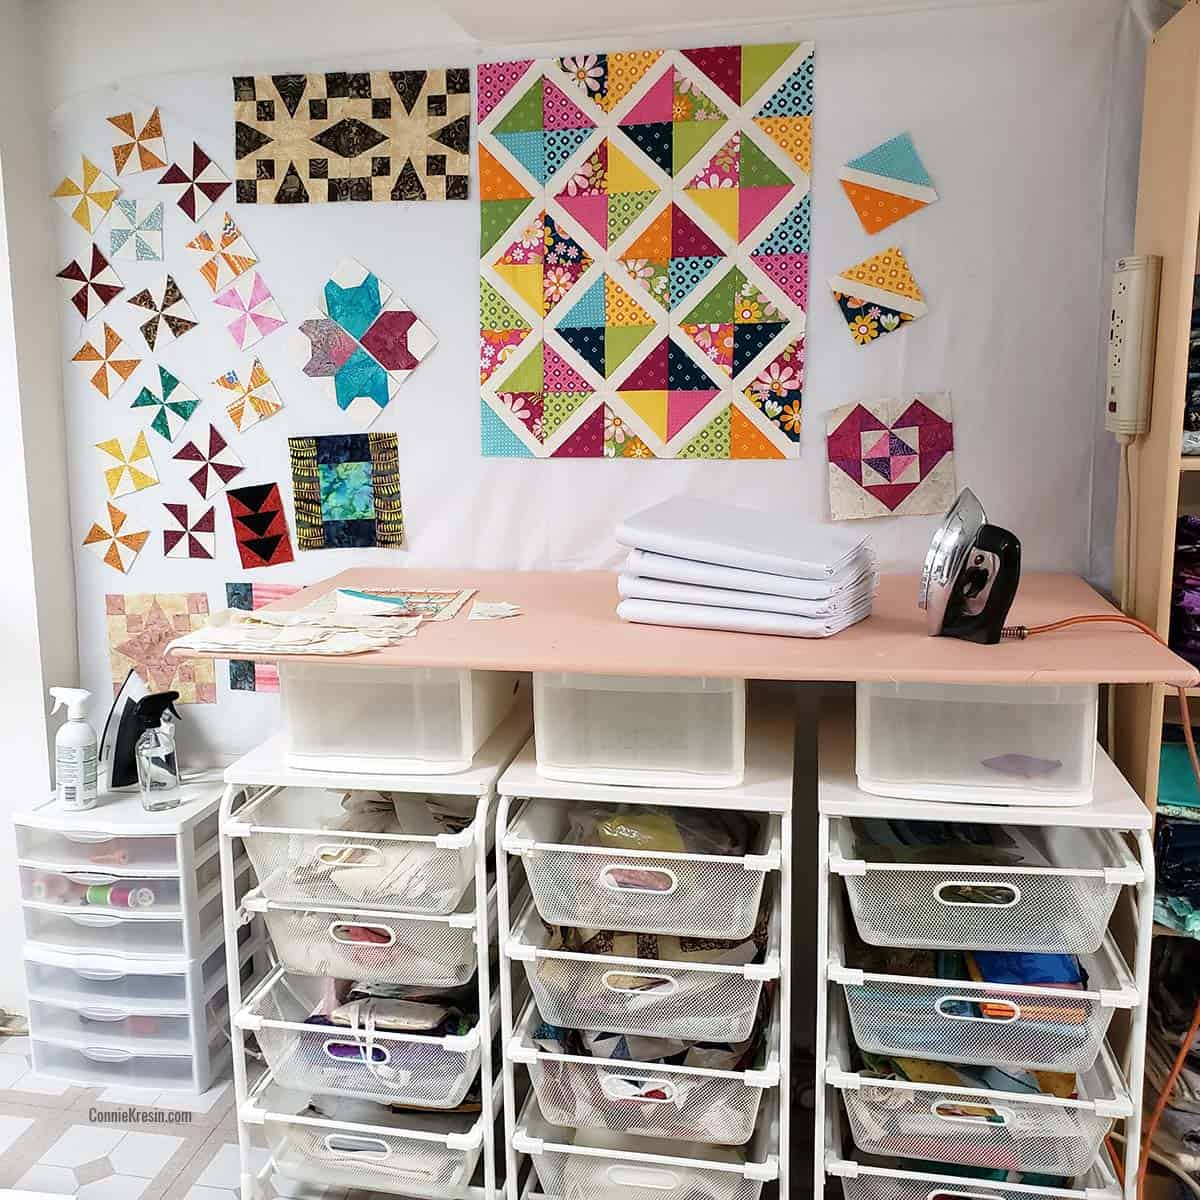 Design wall in quilt studio